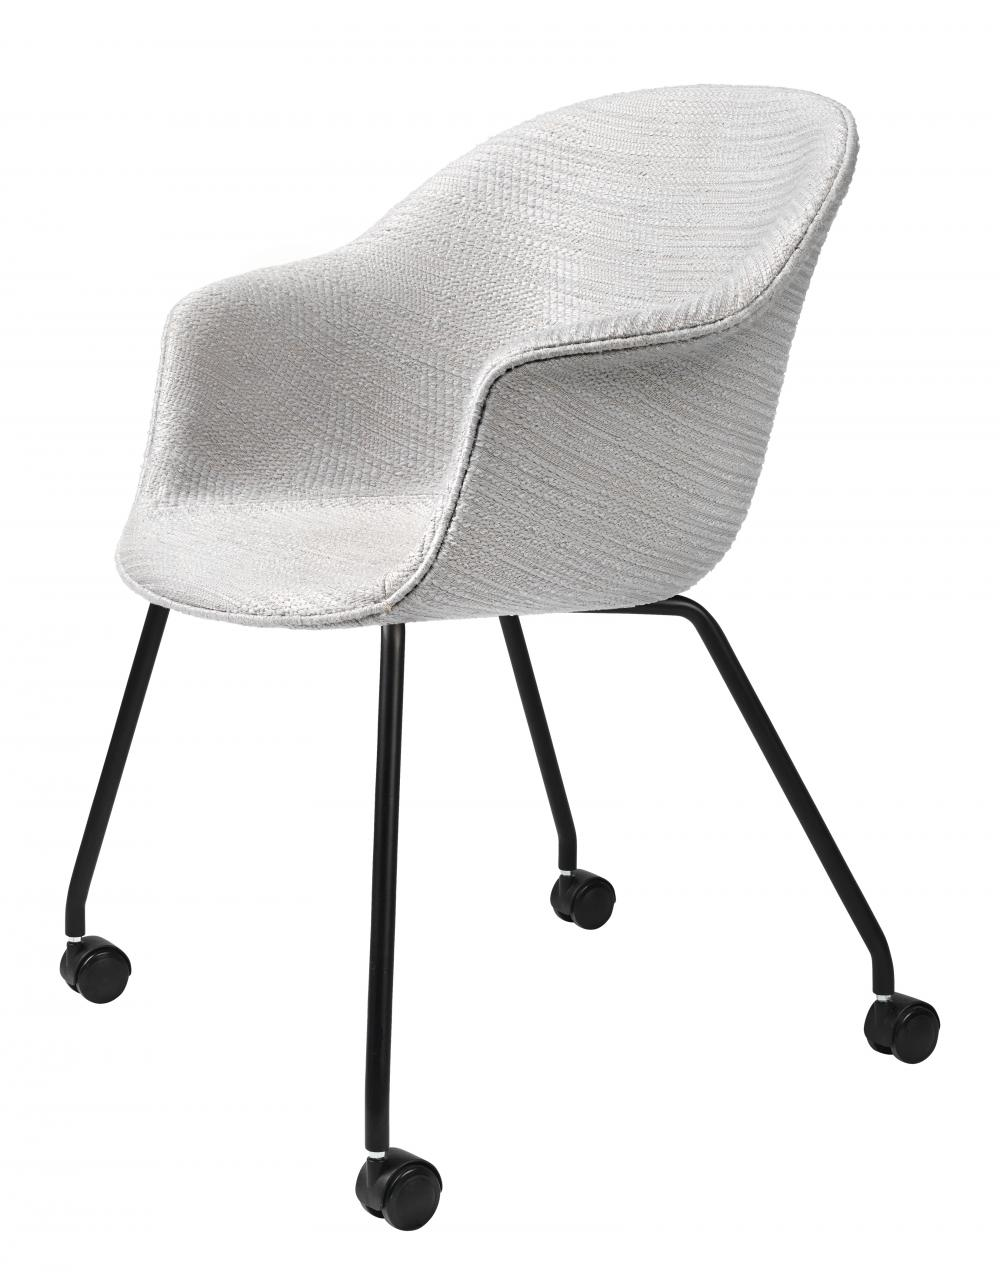 Bat meeting chair - 4 legs with castors - fully upholstered